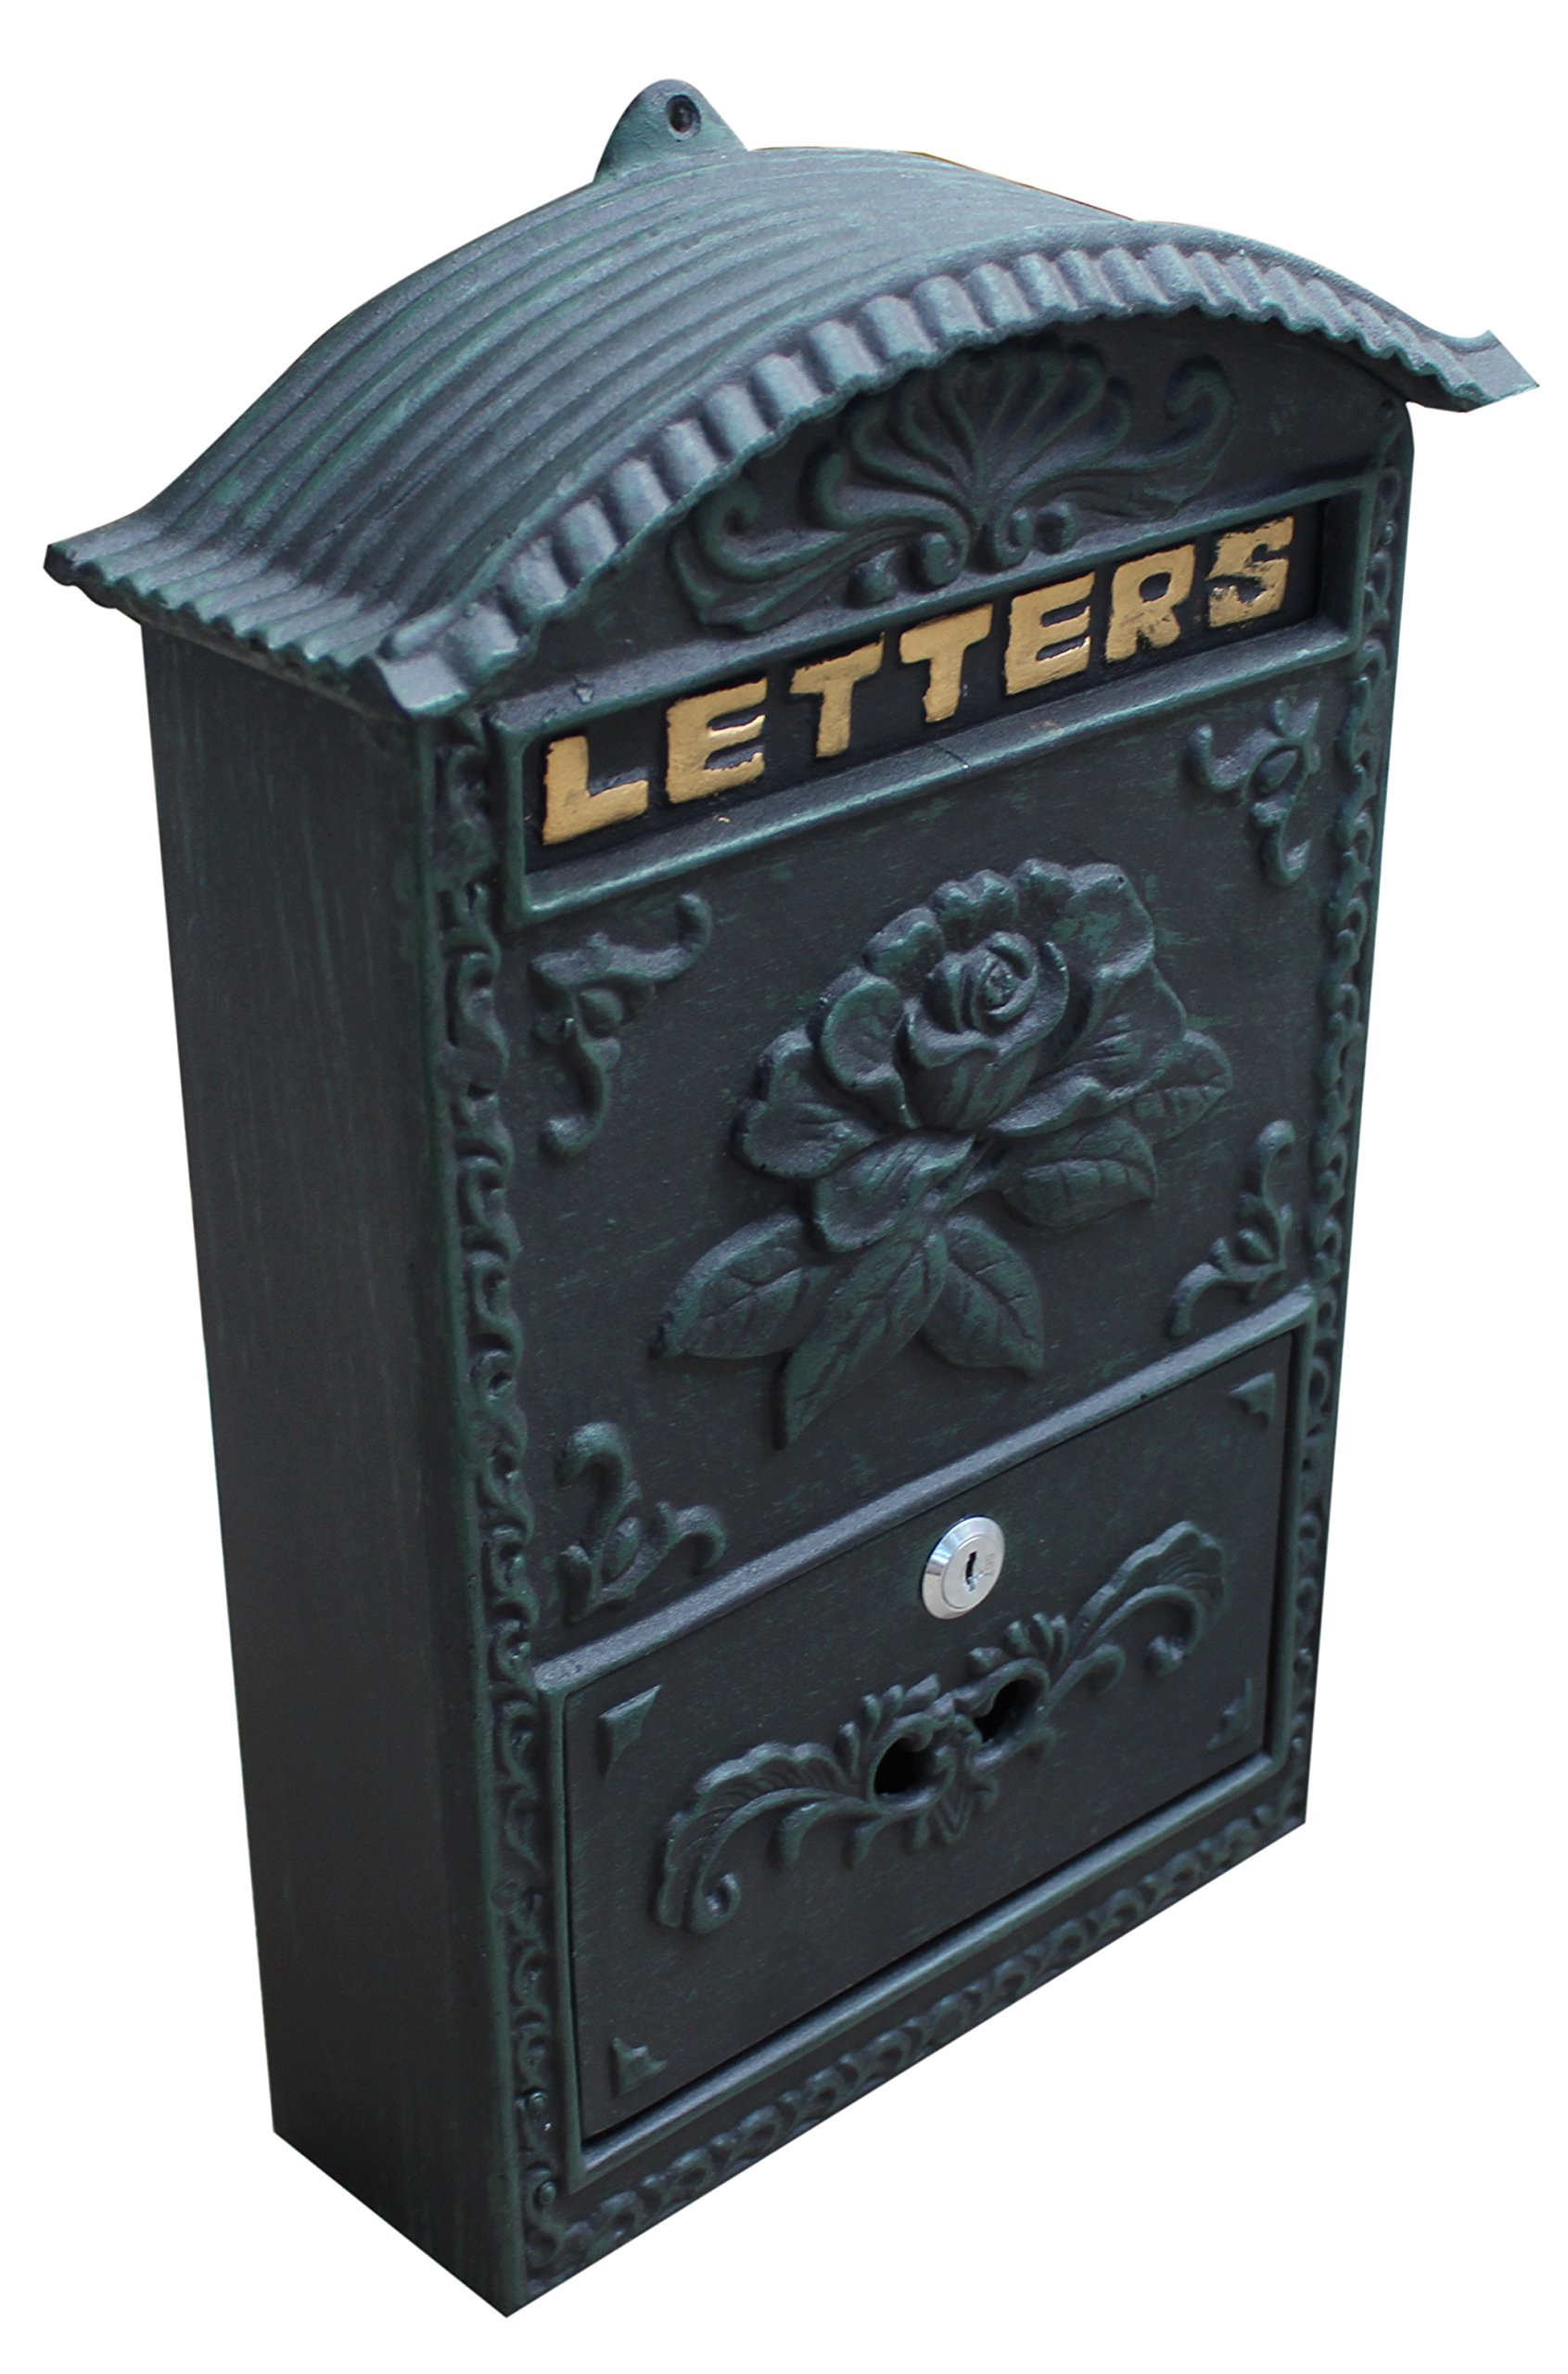 Royal Brands Locking Wall Mounted Mailbox - Vintage Style Rose Design - Rustic Black, Green, Bronze Locking Mail Box - Postage Letter Box by Royal Brands